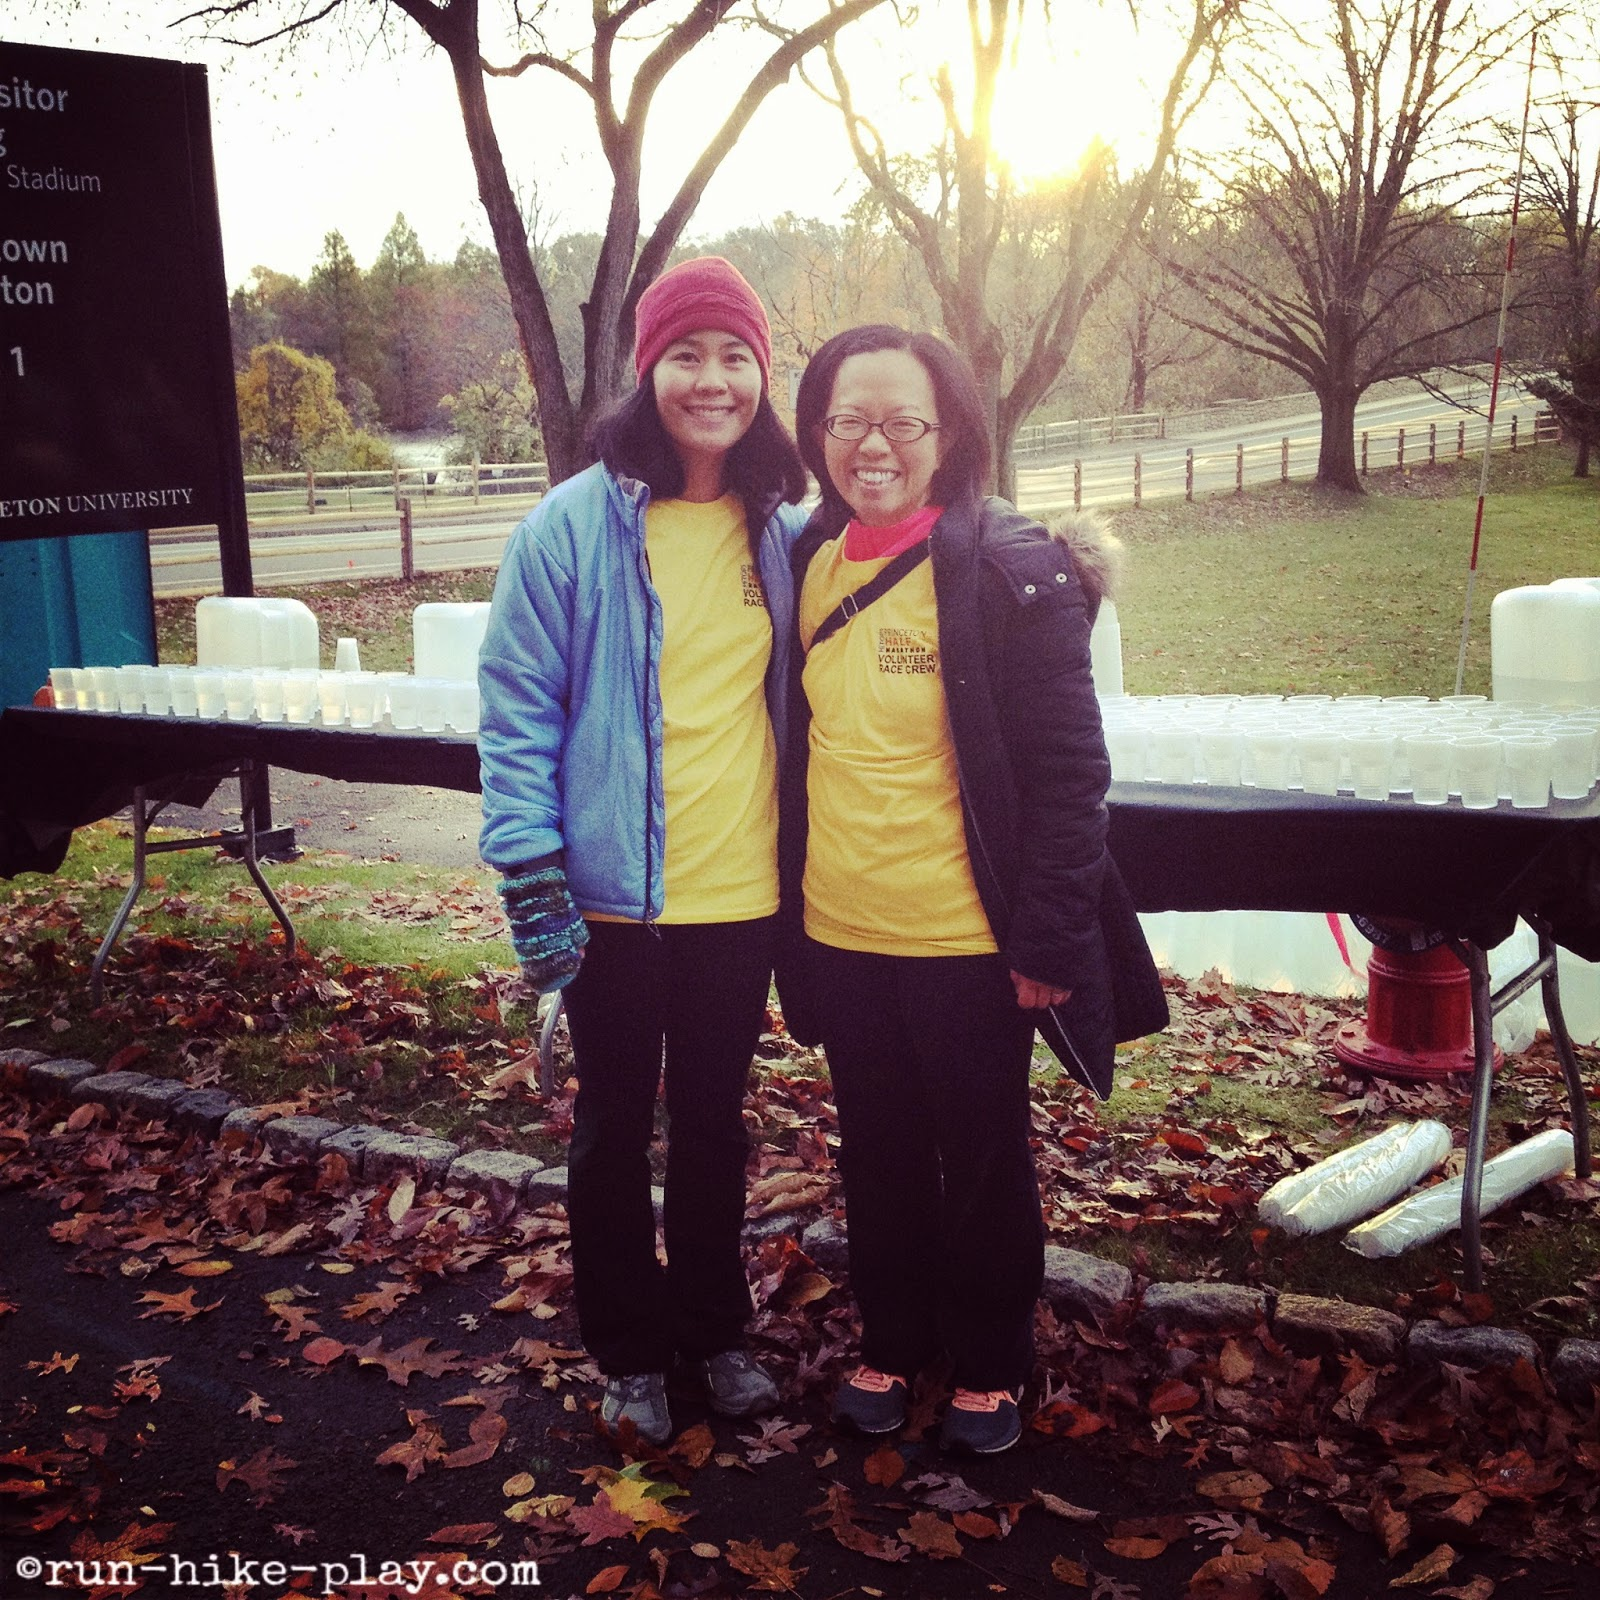 Volunteering for the Princeton Half Marathon